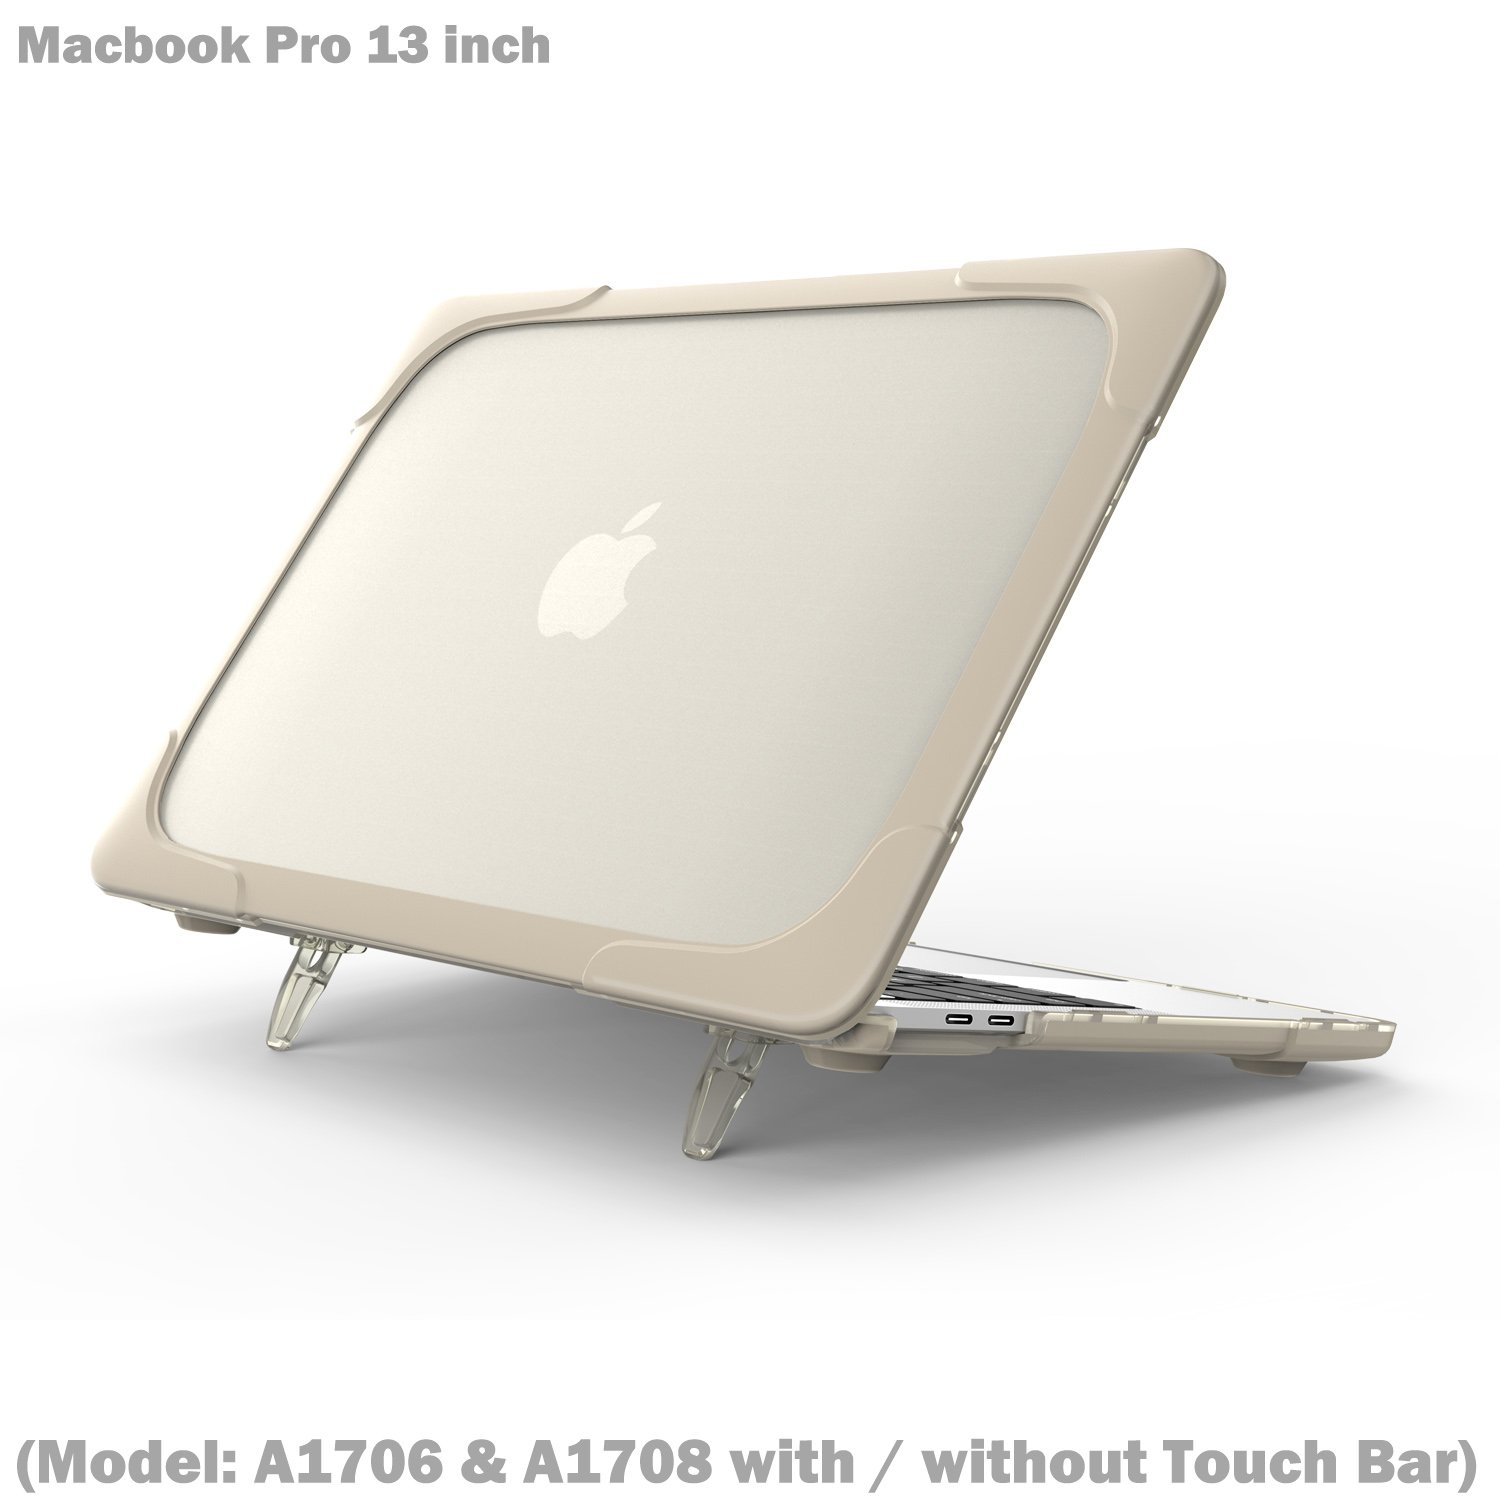 Wtiaw Compatible Macbook Pro 13 inch with/without Touch Bar Case,[Heavy Duty] [Dual Layer] Hard Case Cover with breathe and cool itself freely TPU Bumper Cover (Model: A1706 & A1708)-Khaki